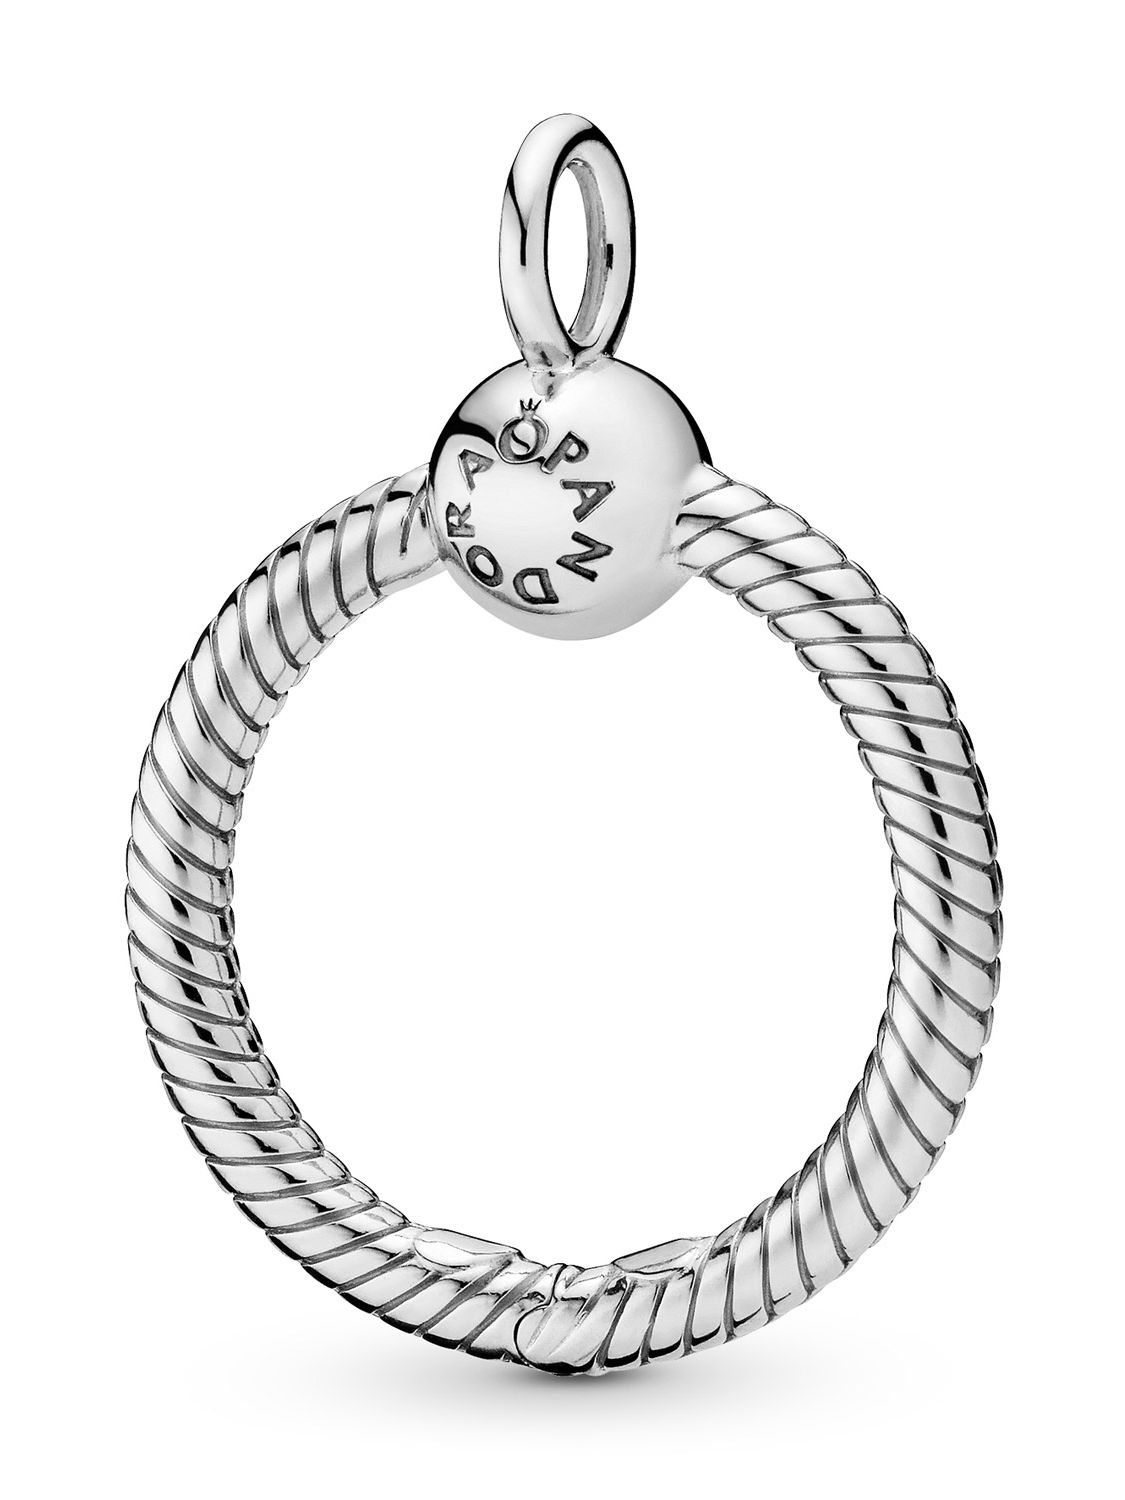 Pandora 398296 Pendant Moments O 25 Mm With Best And Newest Pandora Moments Small O Pendant Necklaces (Gallery 1 of 25)